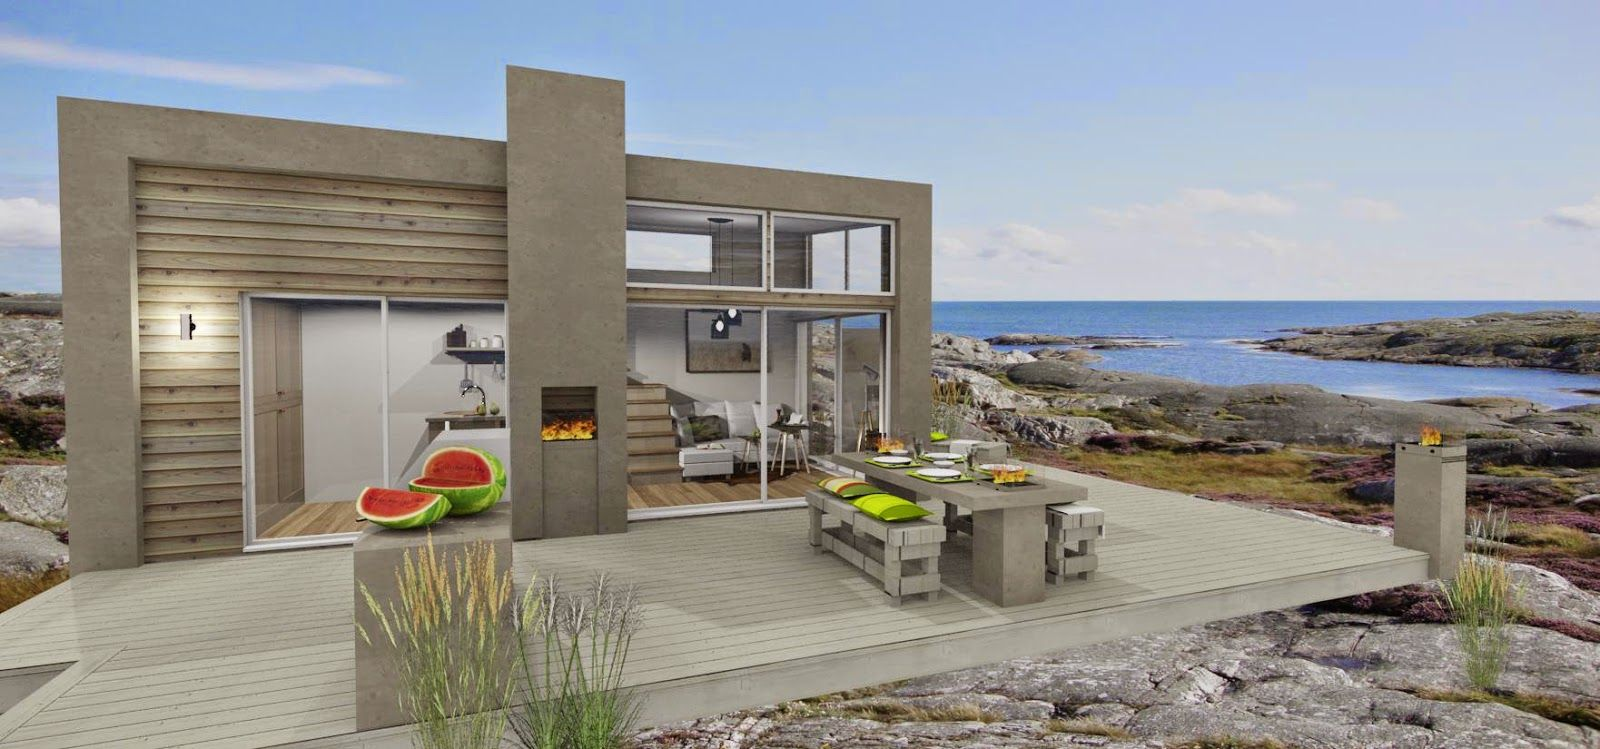 1000  images about compact living on pinterest